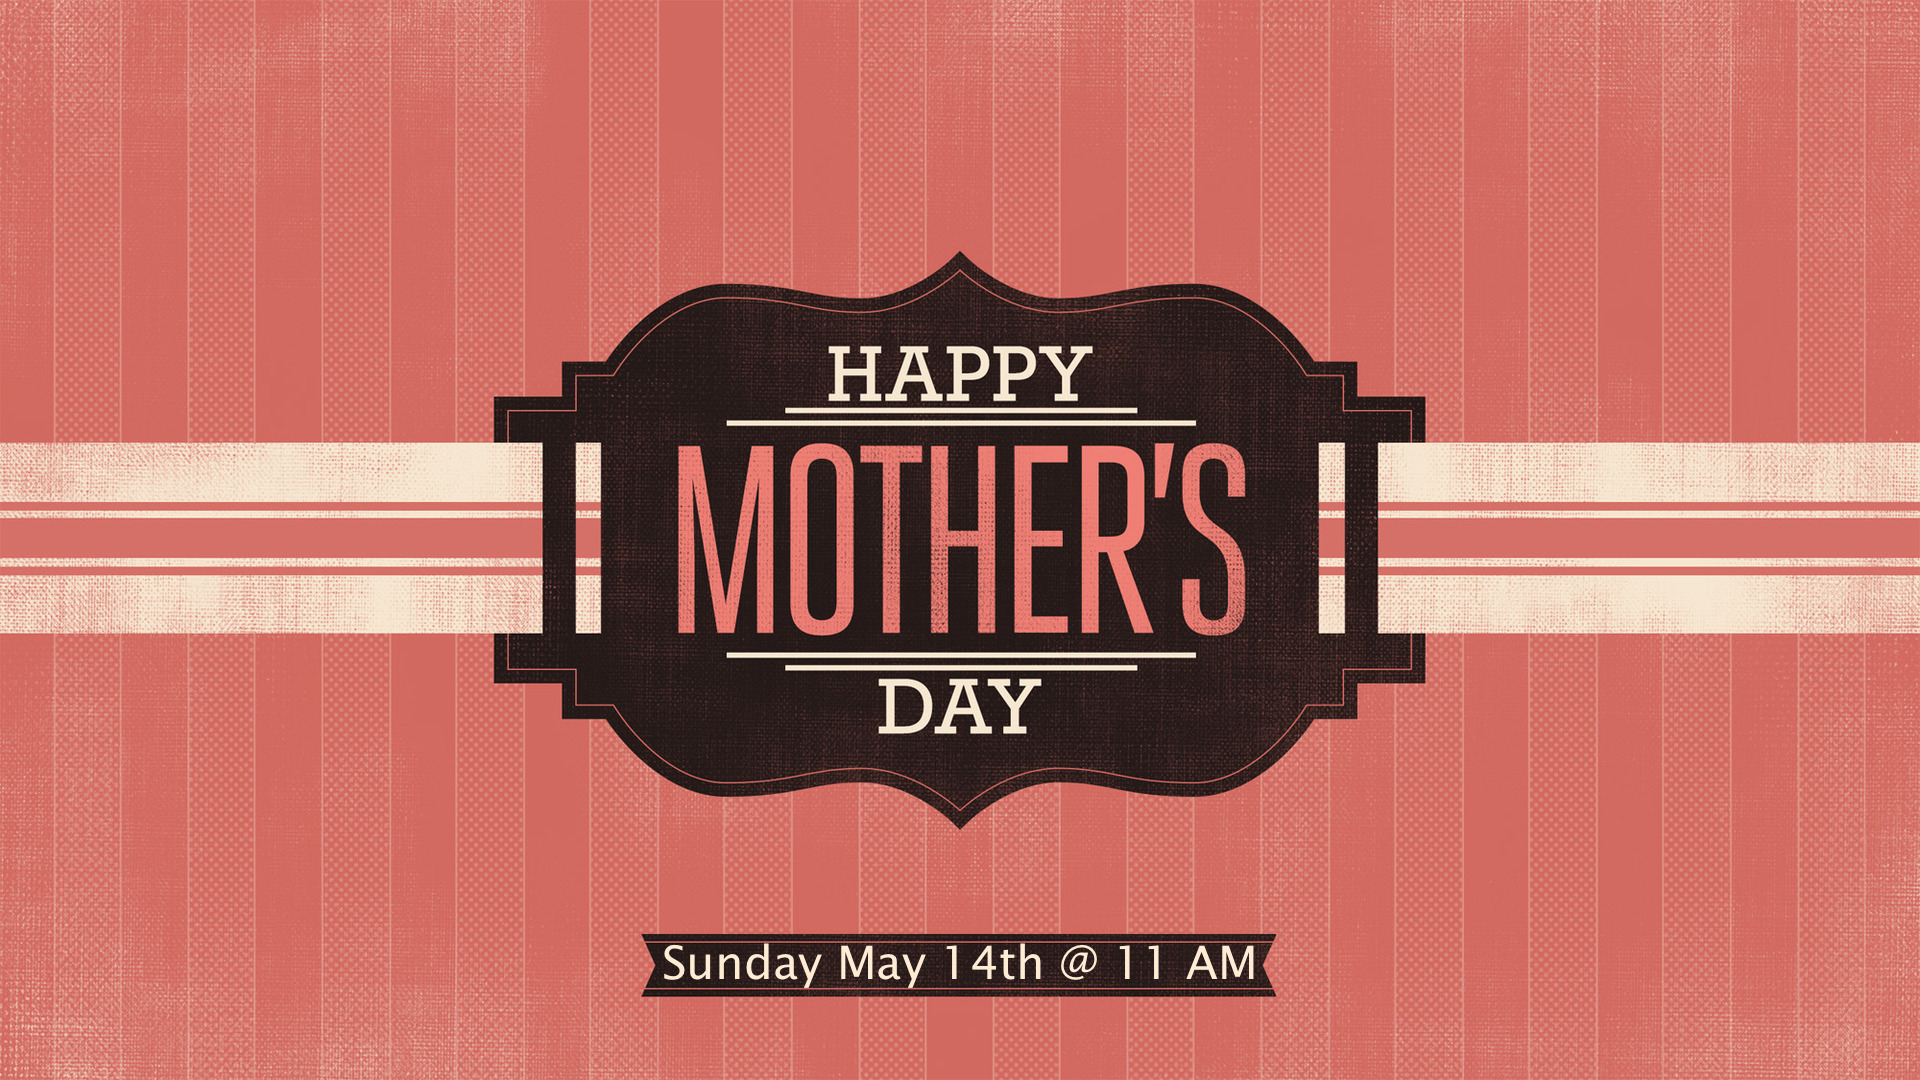 Join us for a great Mother's Day celebration.